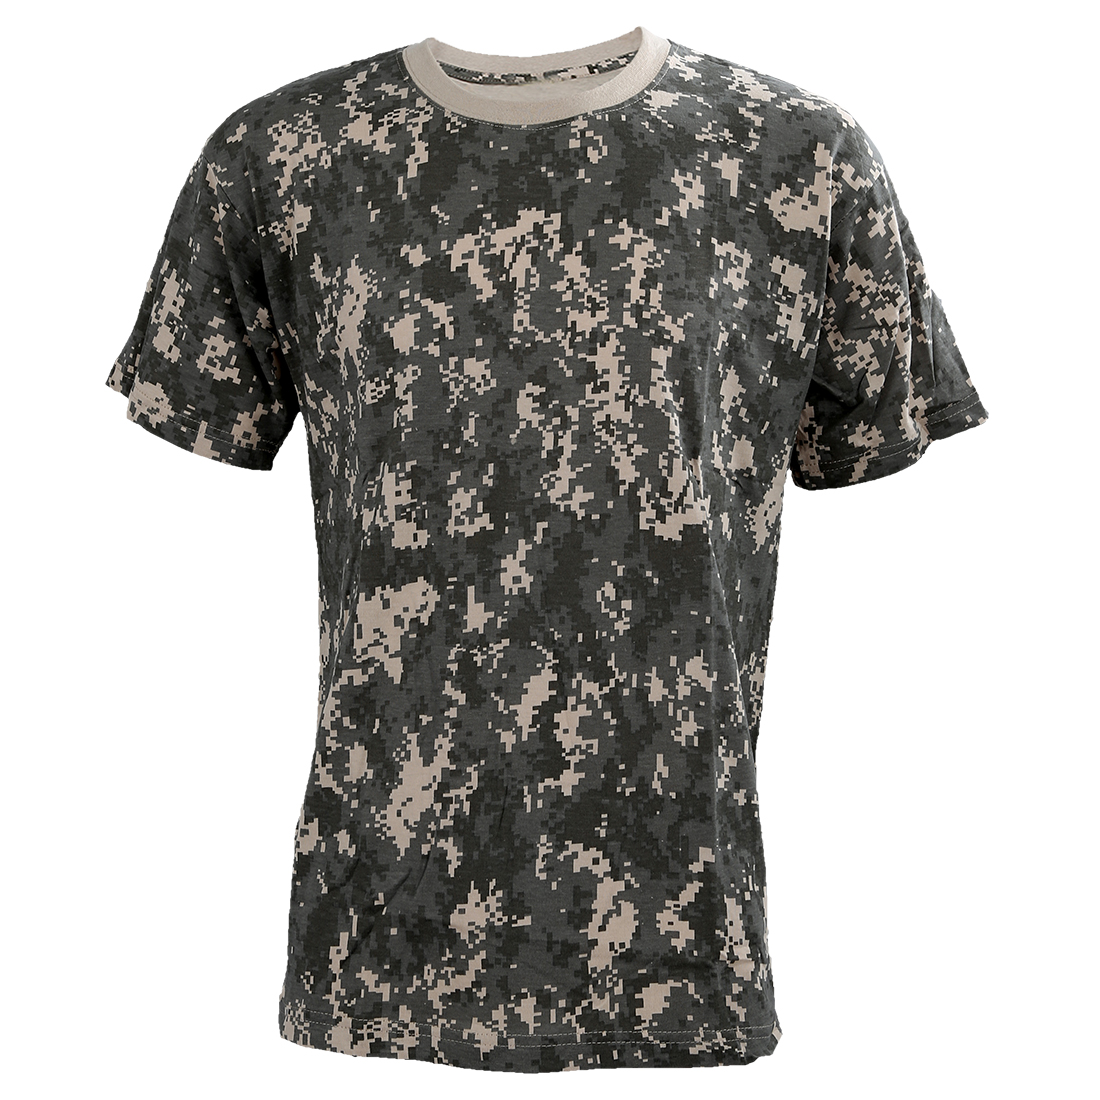 ELOS-Outdoors Hunting Camouflage T-shirt Men Army Tactical Combat T Shirt Military Dry Sport Camo Outdoor Camp Tees